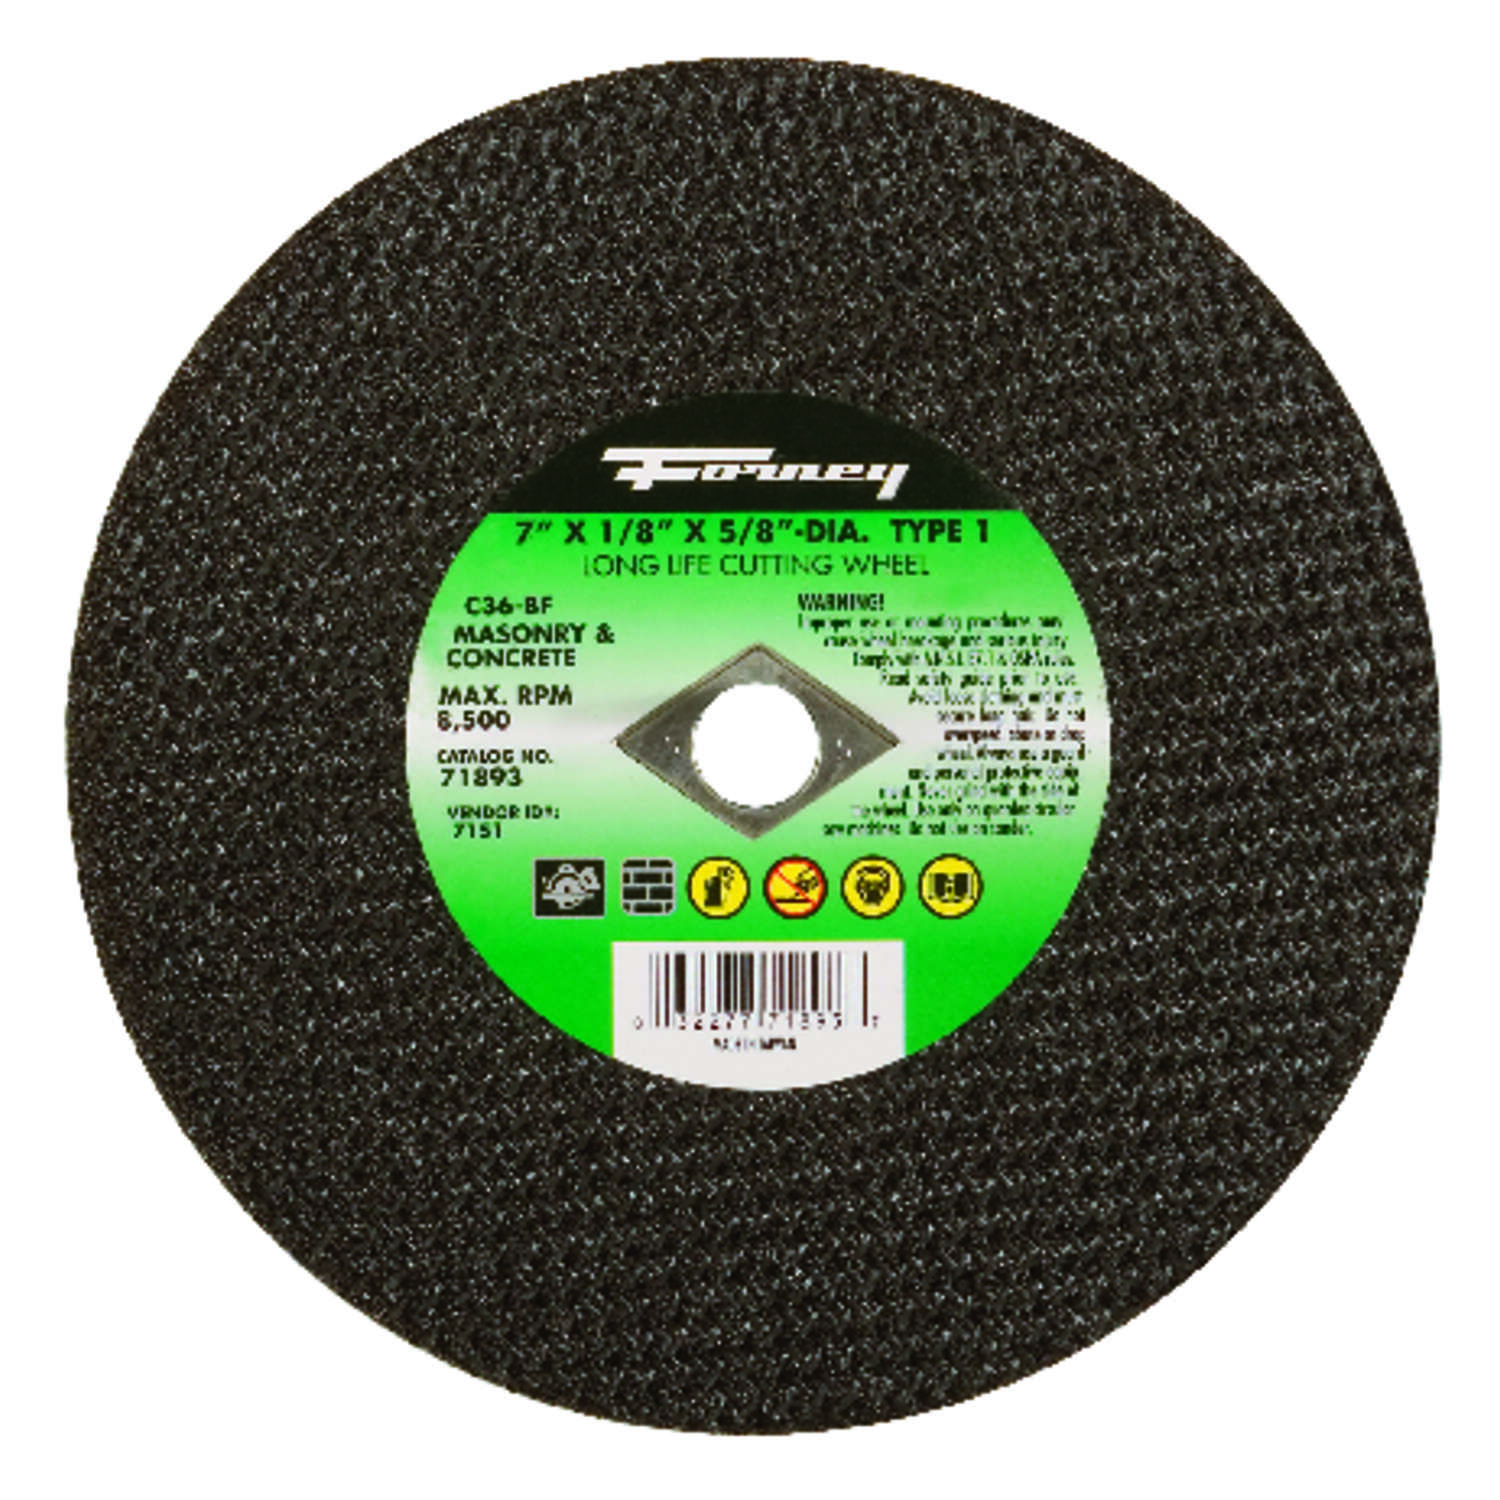 Forney  7 in. Dia. x 5/8 in.  Silicon Carbide  Masonry Cutting Wheel  1 pc.